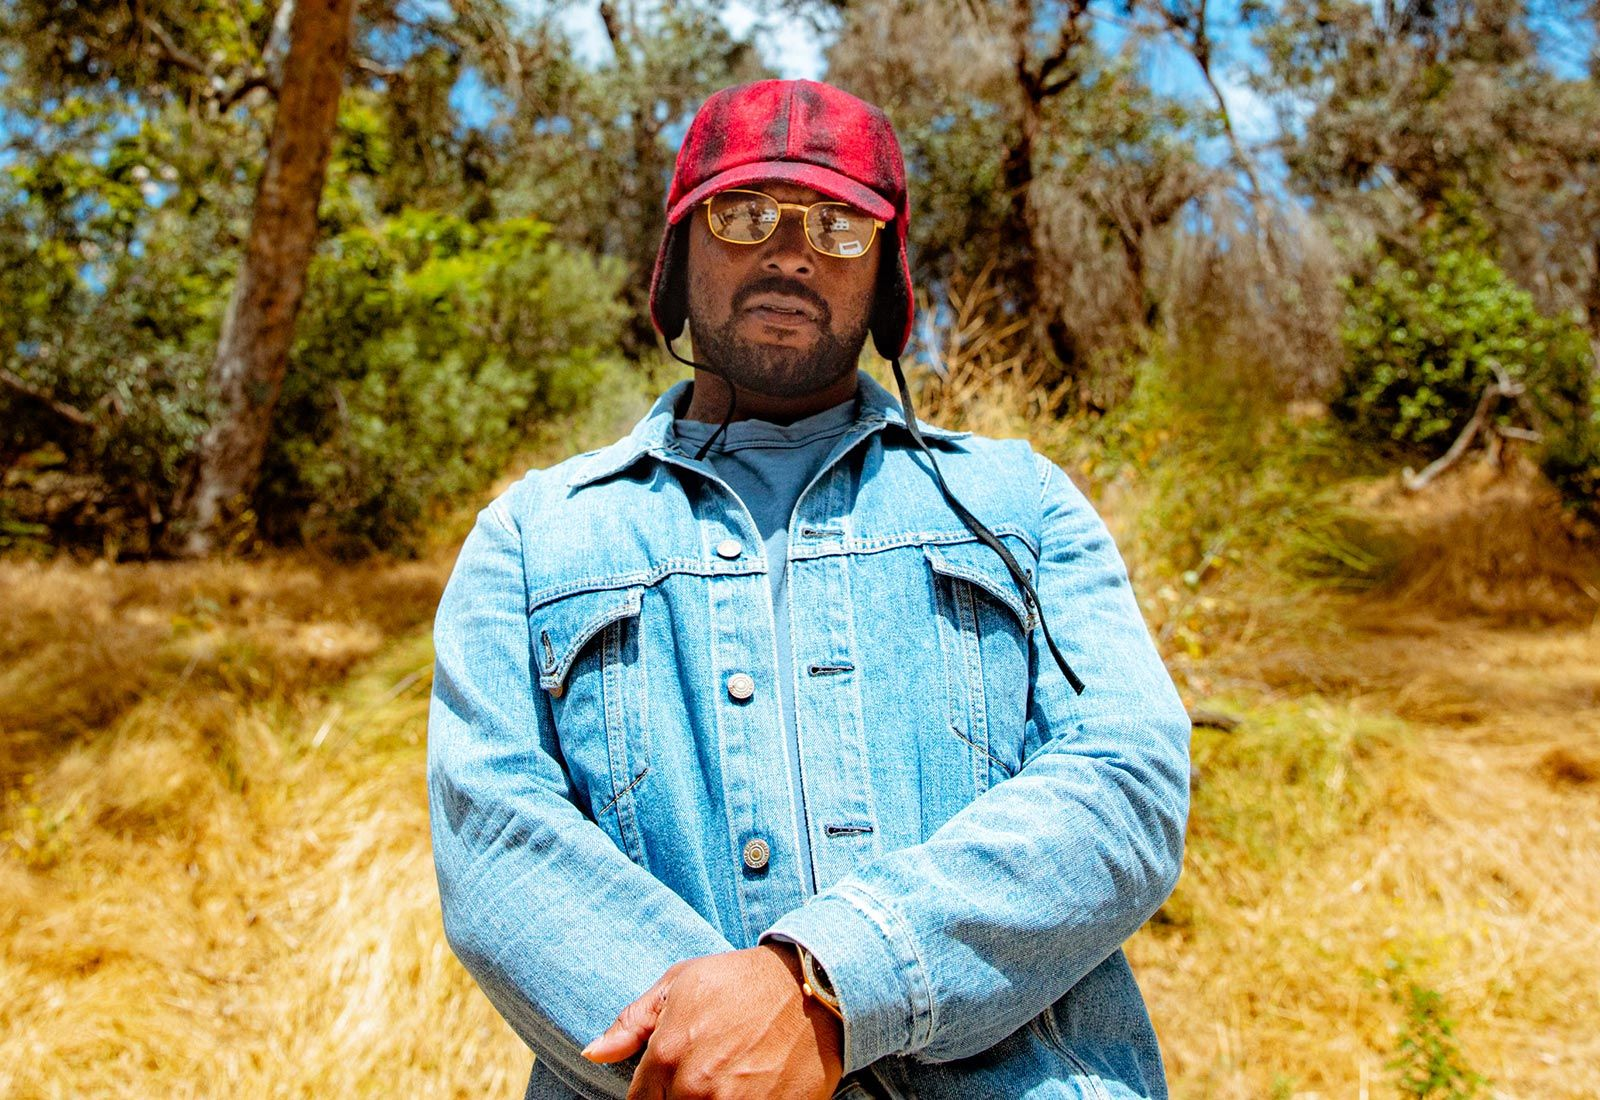 How ScHoolboy Q Found Bliss on the Golf Course